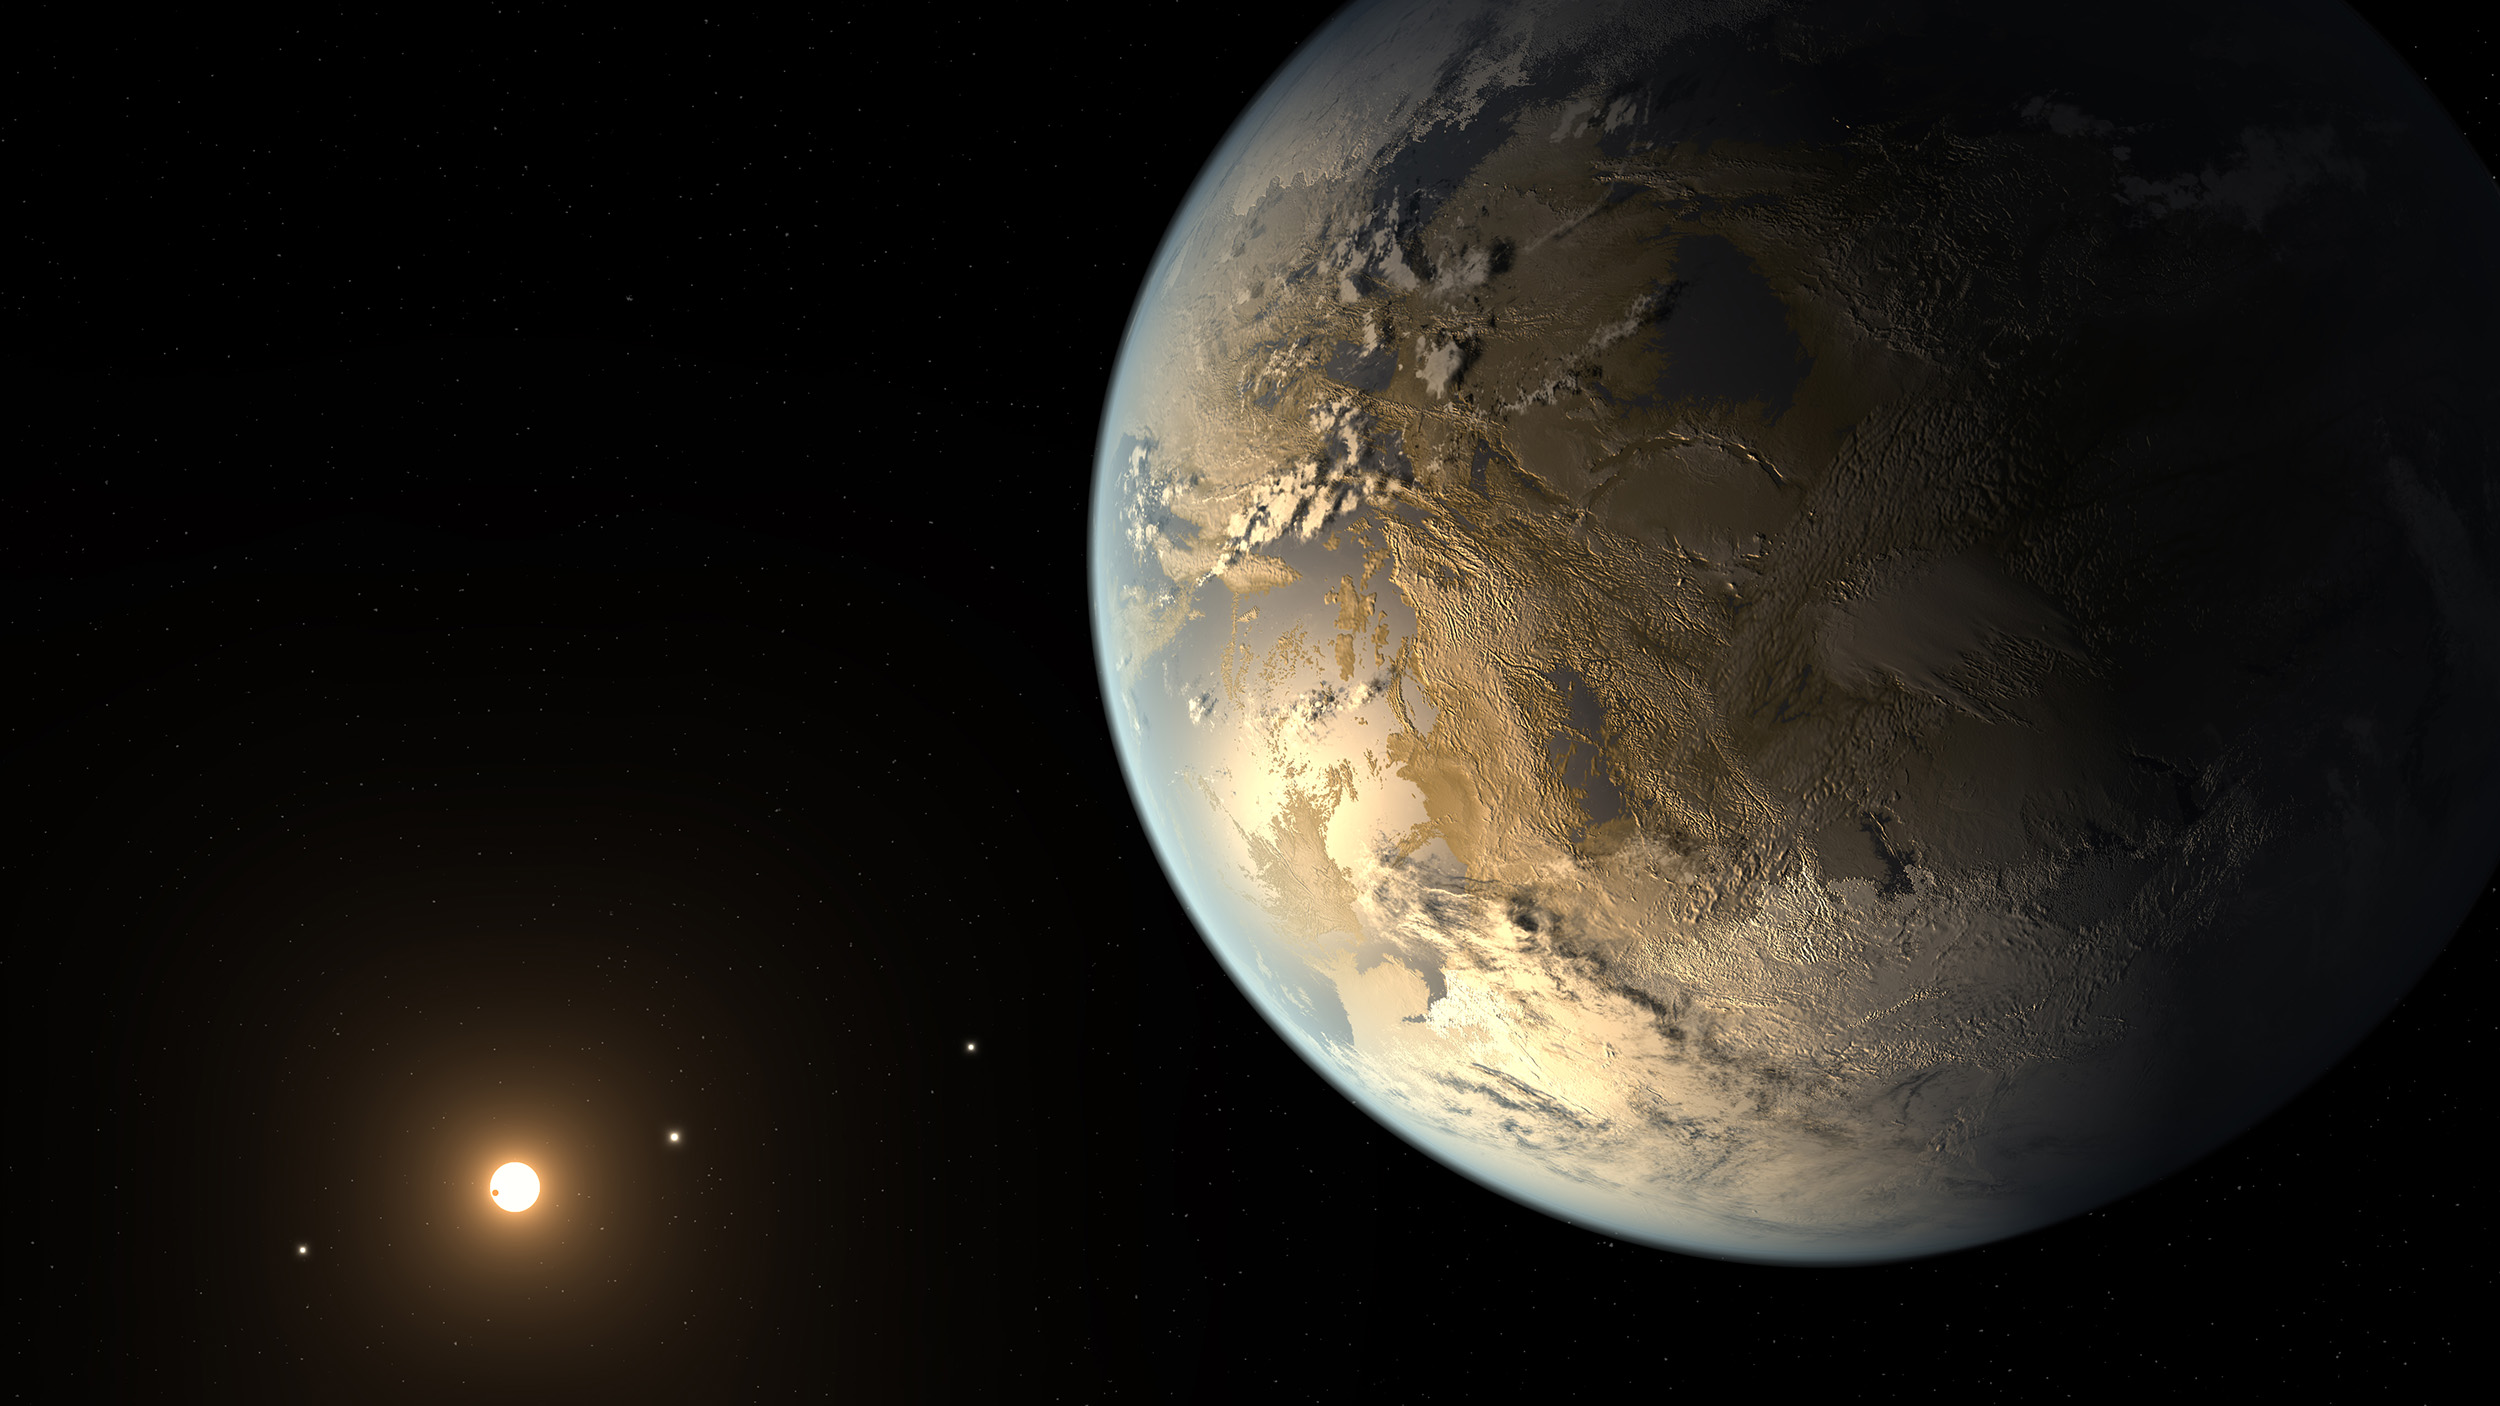 An artist's conception of the newly discovered exoplanet Kepler-186f orbiting the red dwarf star Kepler-186. The planet is the first Earth-sized world to be found orbiting a star at a distance that would allow it to harbor liquid water, a necessary ingredient for life as we know it. Image credit: NASA/Ames/JPL-Caltech/T. Pyle